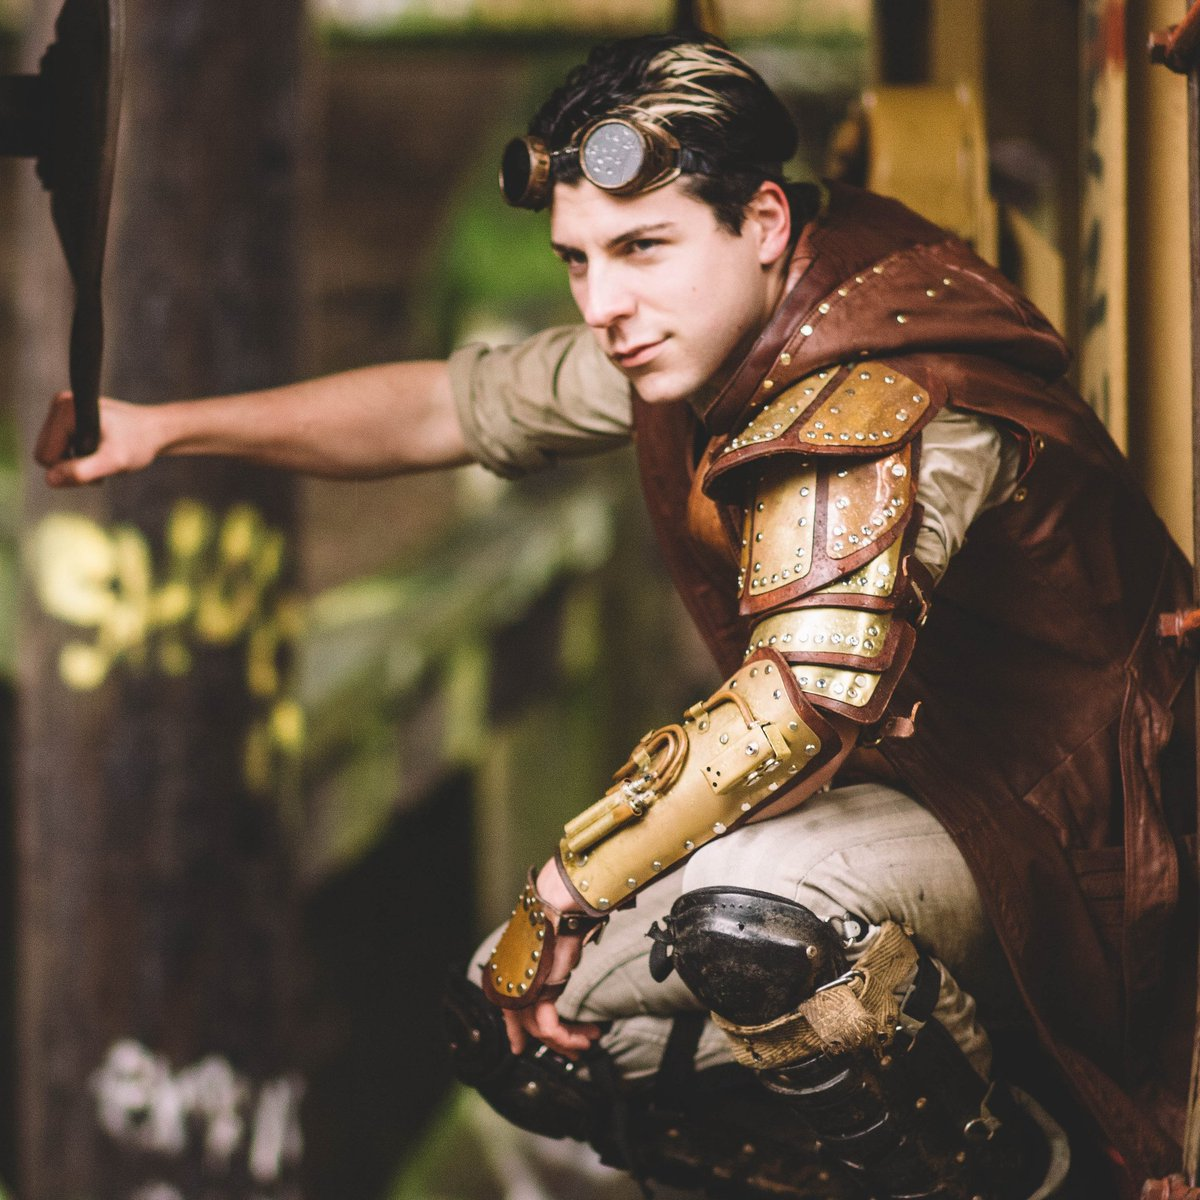 The amazing Ainsworth Photography hero Andy just retouched photos for my etsy! Go grab your signed 8x10 prints over at https://t.co/essRIqpOmR #cosplay #cosplayer #steampunk #armor #photography #Halloween #costume #costuming